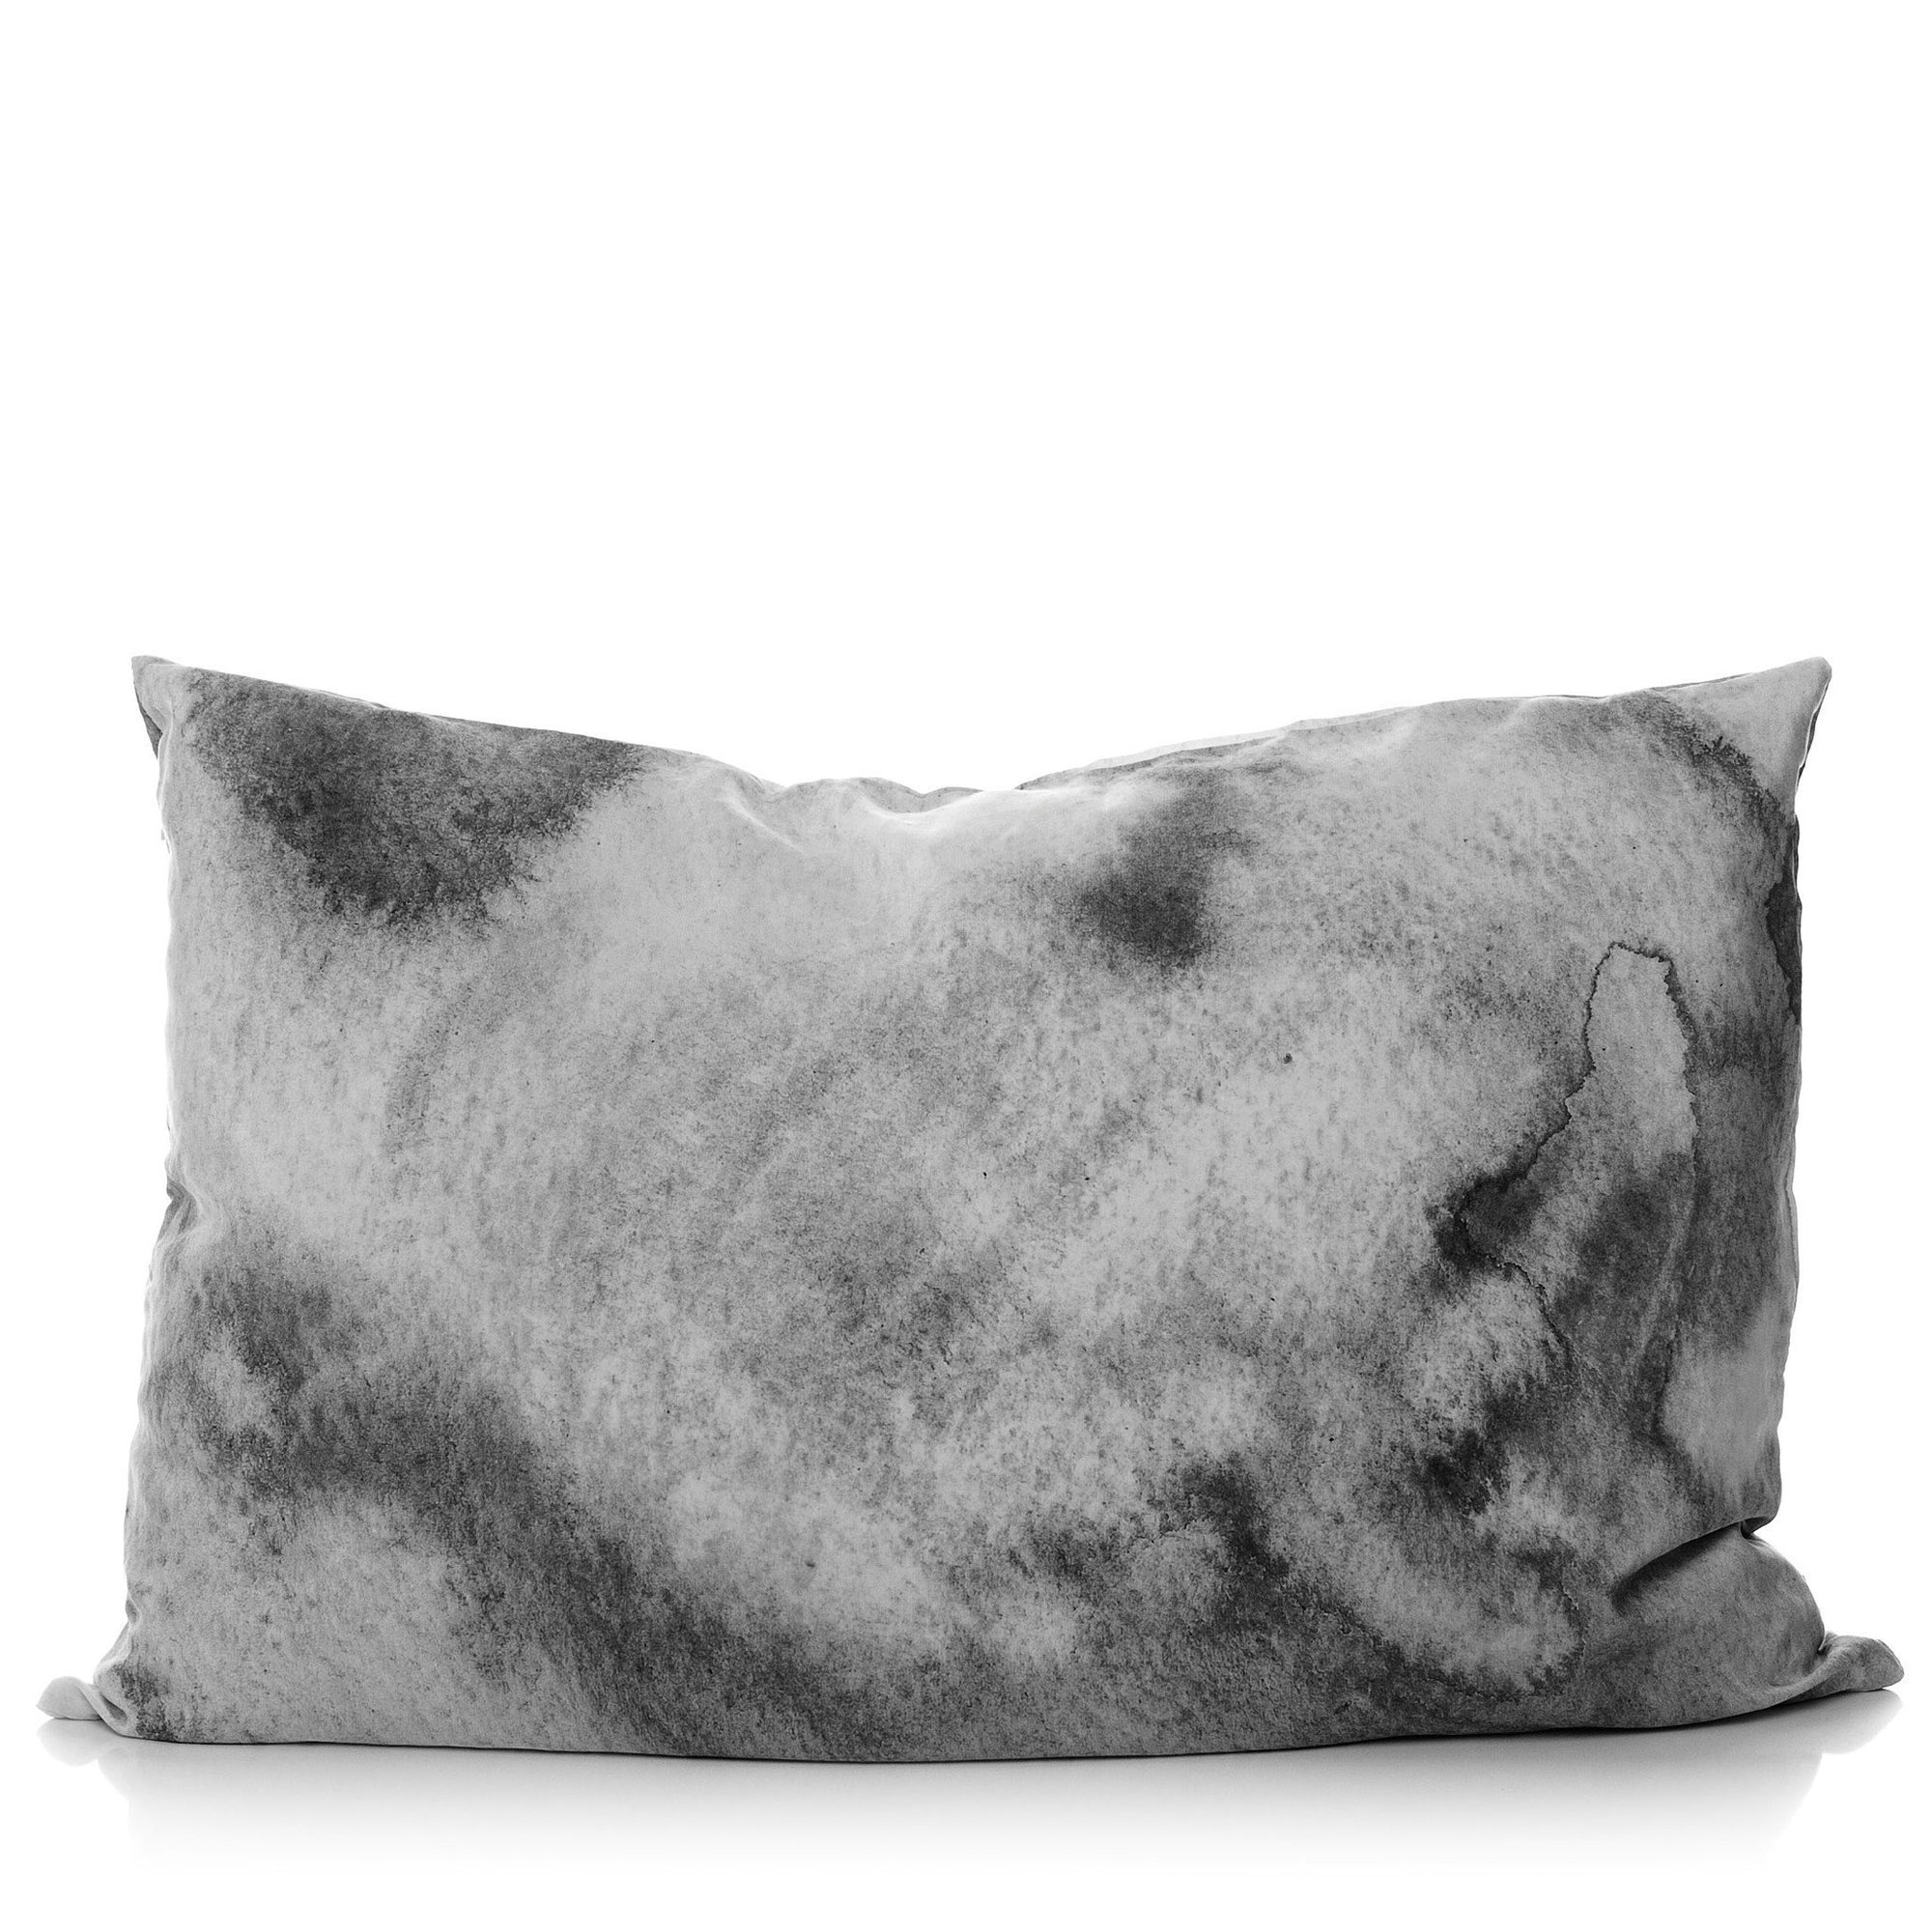 buy Grey Water Pillowcase online